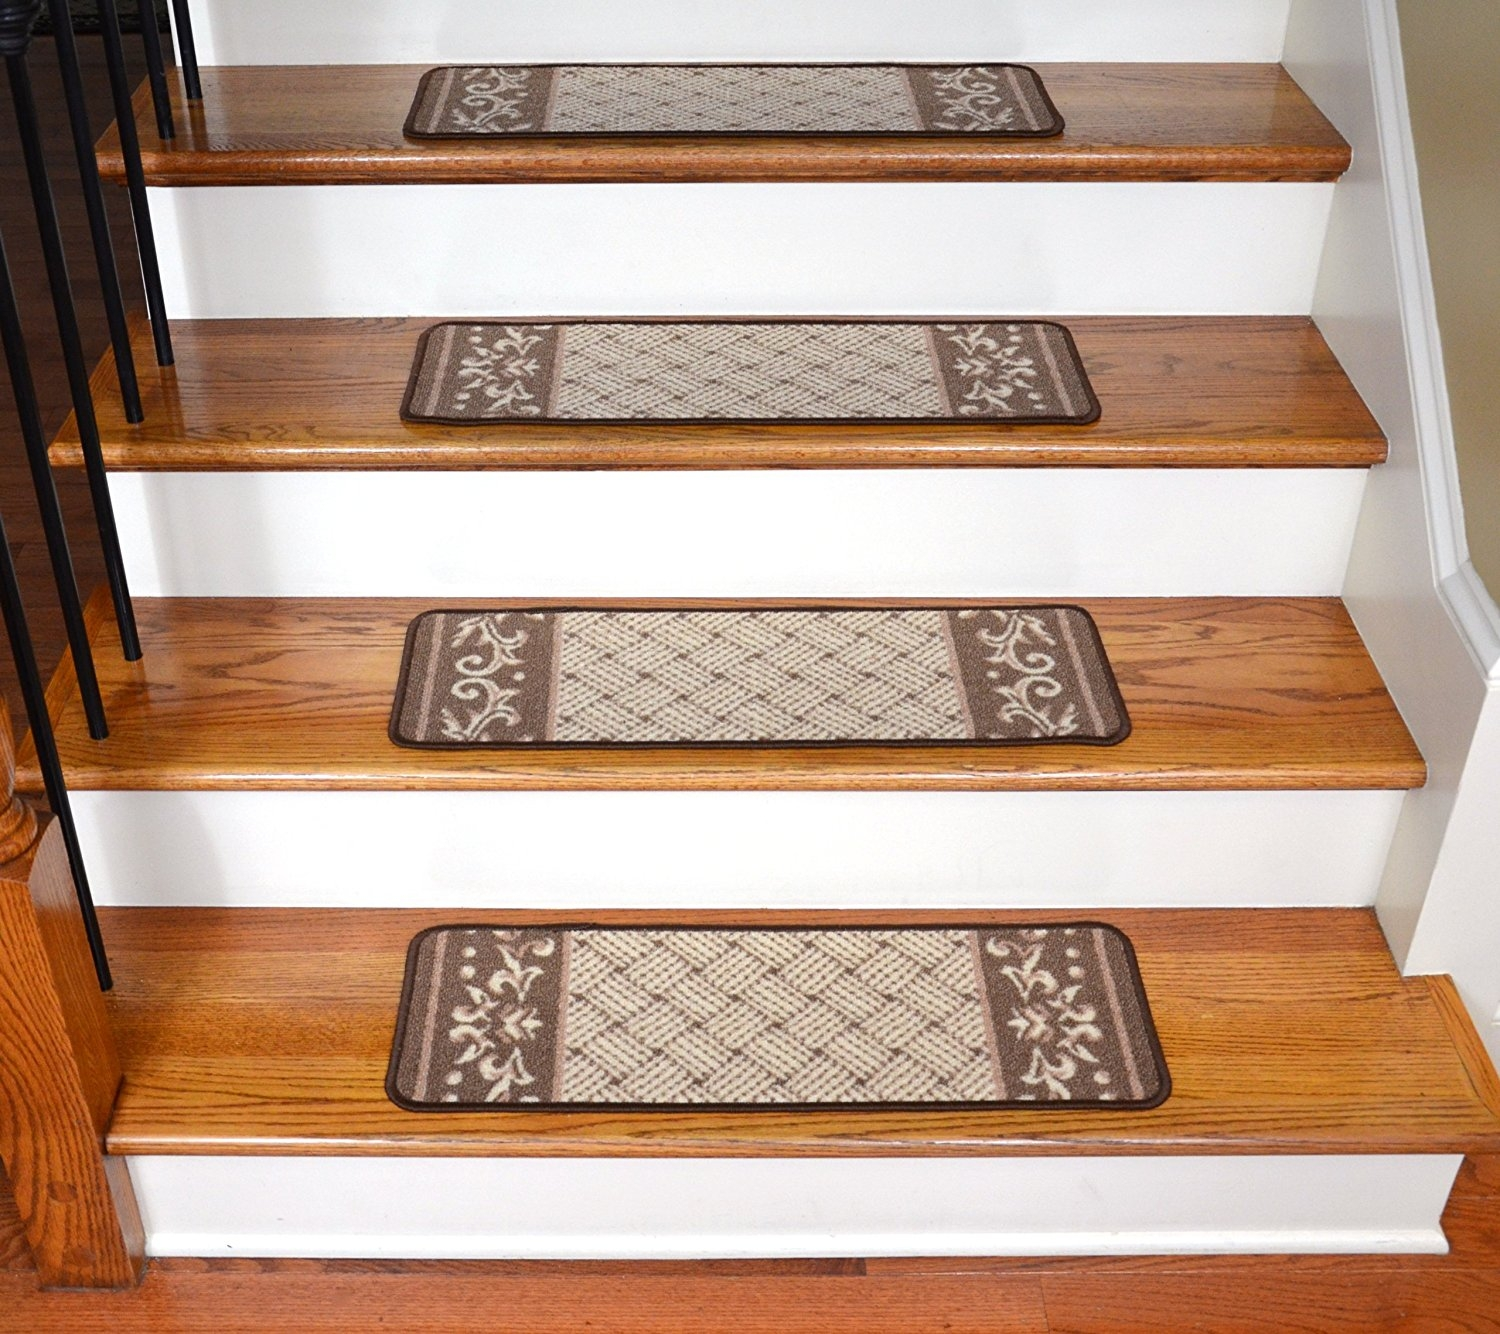 Rug Carpet Strips For Stairs Stair Rugs Carpet Stair Treads Lowes With Regard To Braided Rug Stair Treads (#15 of 20)